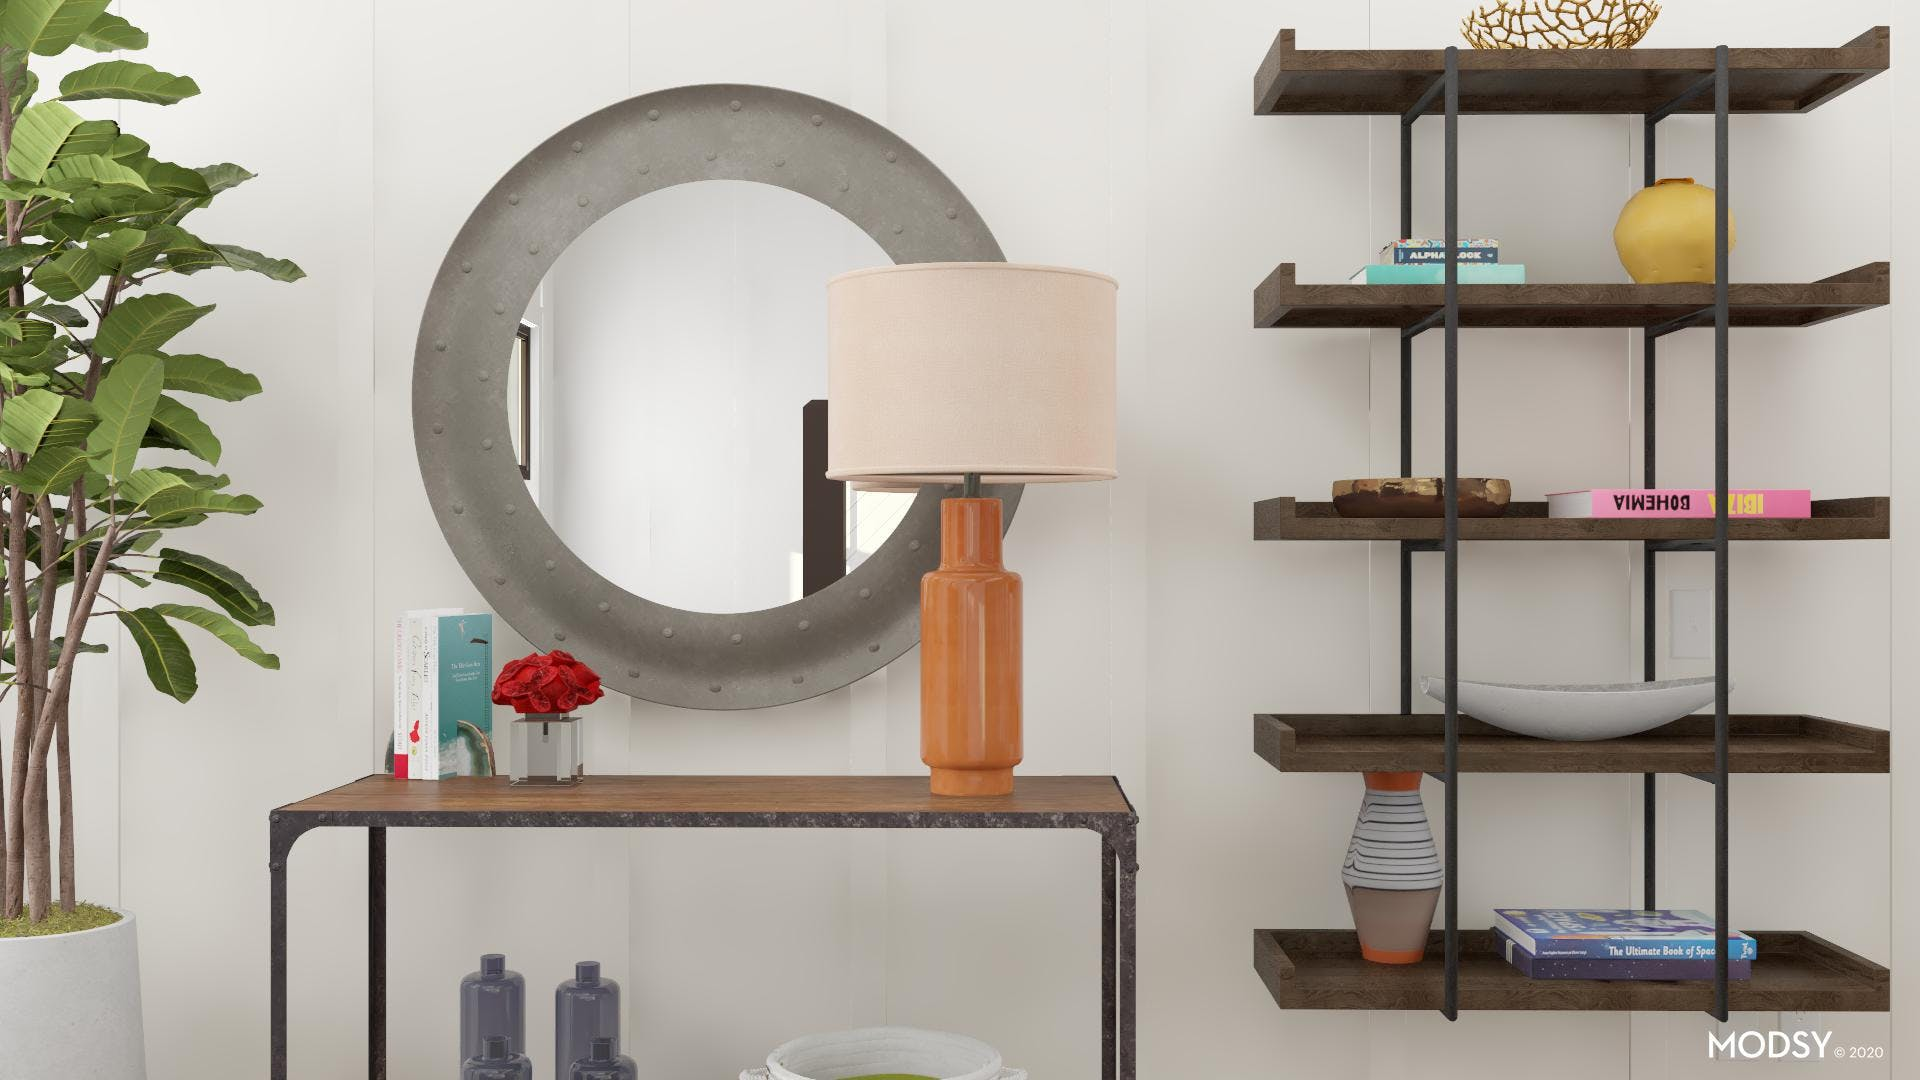 Incorporating Bright Colors Into An Industrial Design